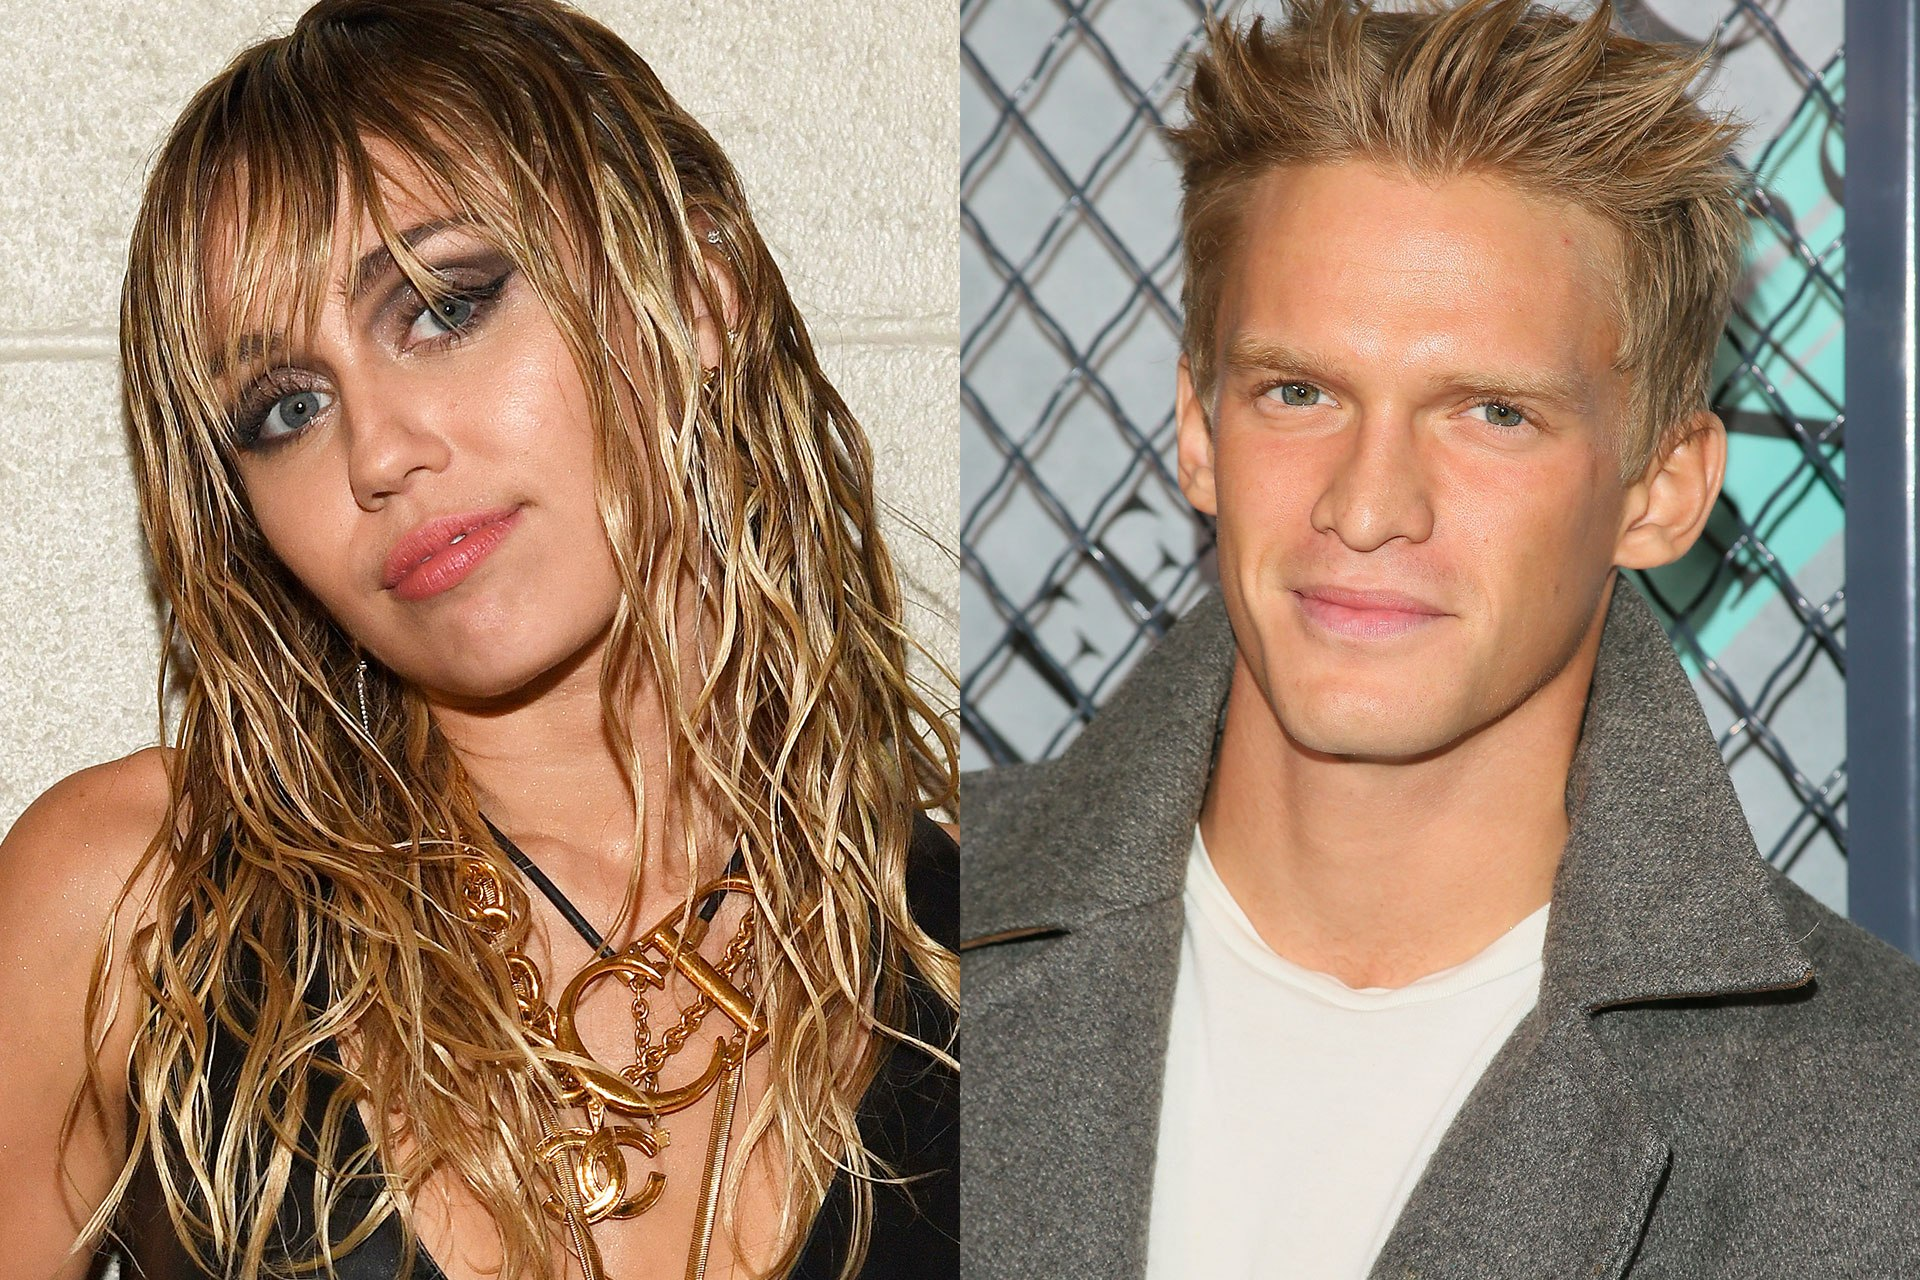 Cody Simpson spoke out about his rumoured relationship with Miley Cyrus